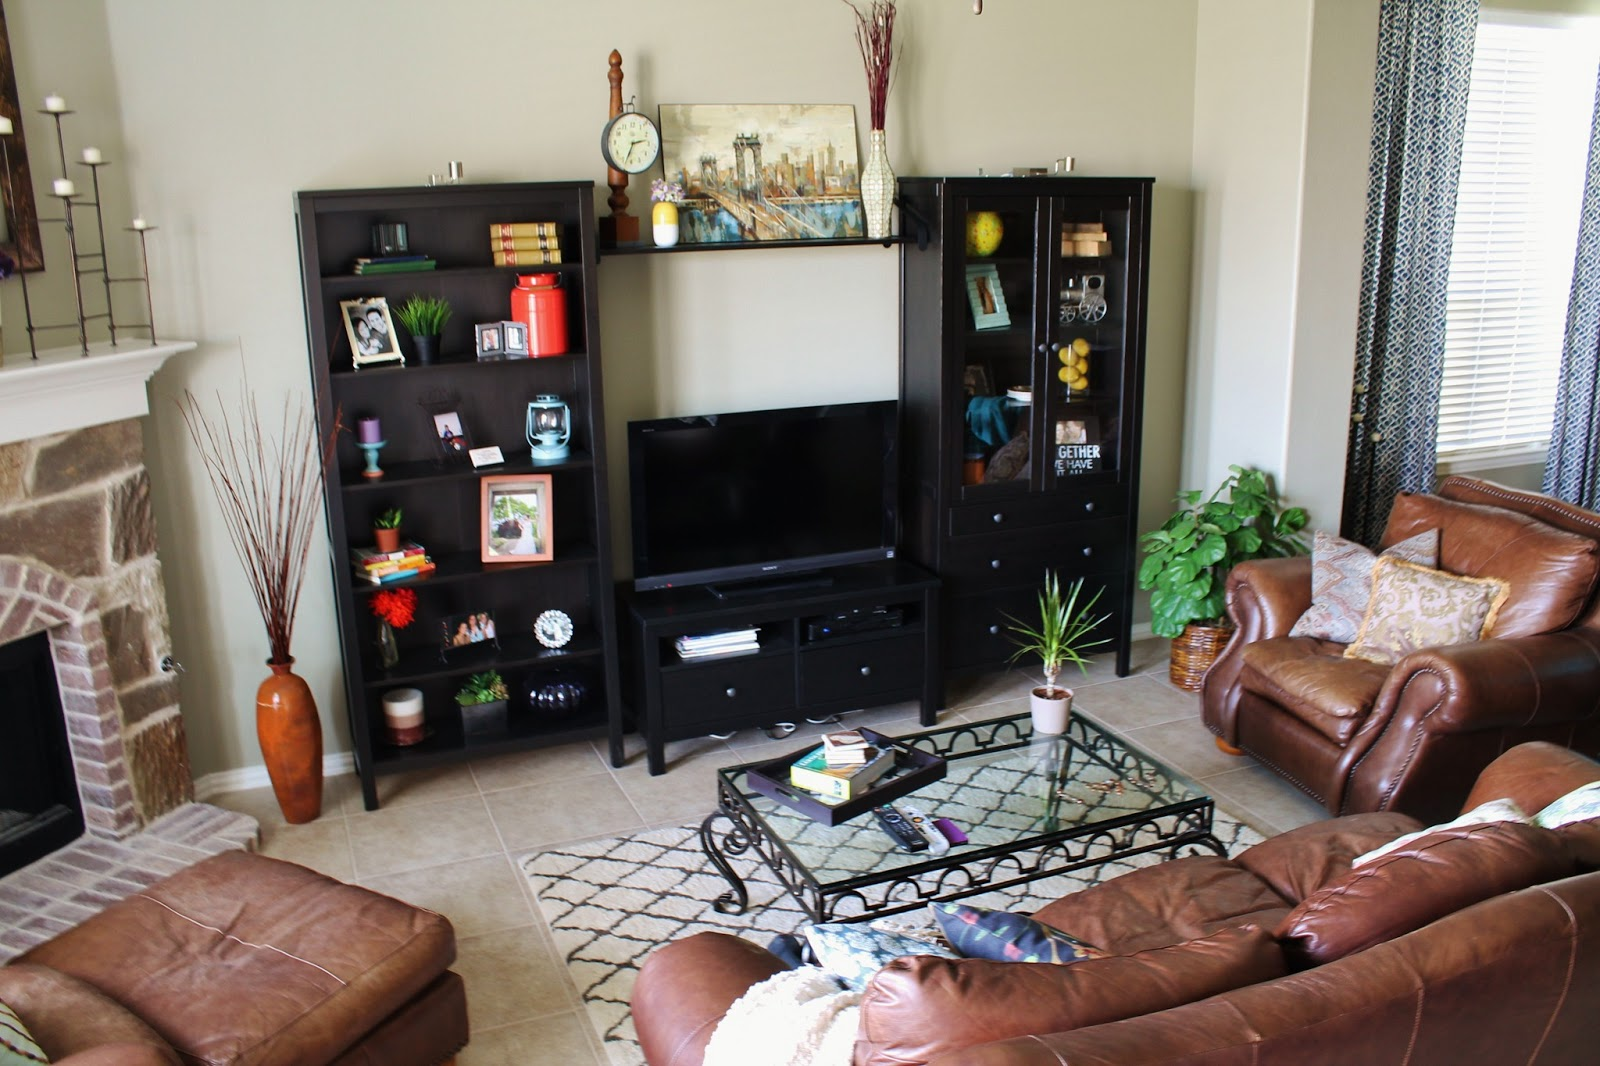 Ikea hemnes entertainment center - We Went With A Combination From The Hemnes Family At Ikea Since The Pieces Come Separately You Can Sortof Custom Make How You Want It To Look